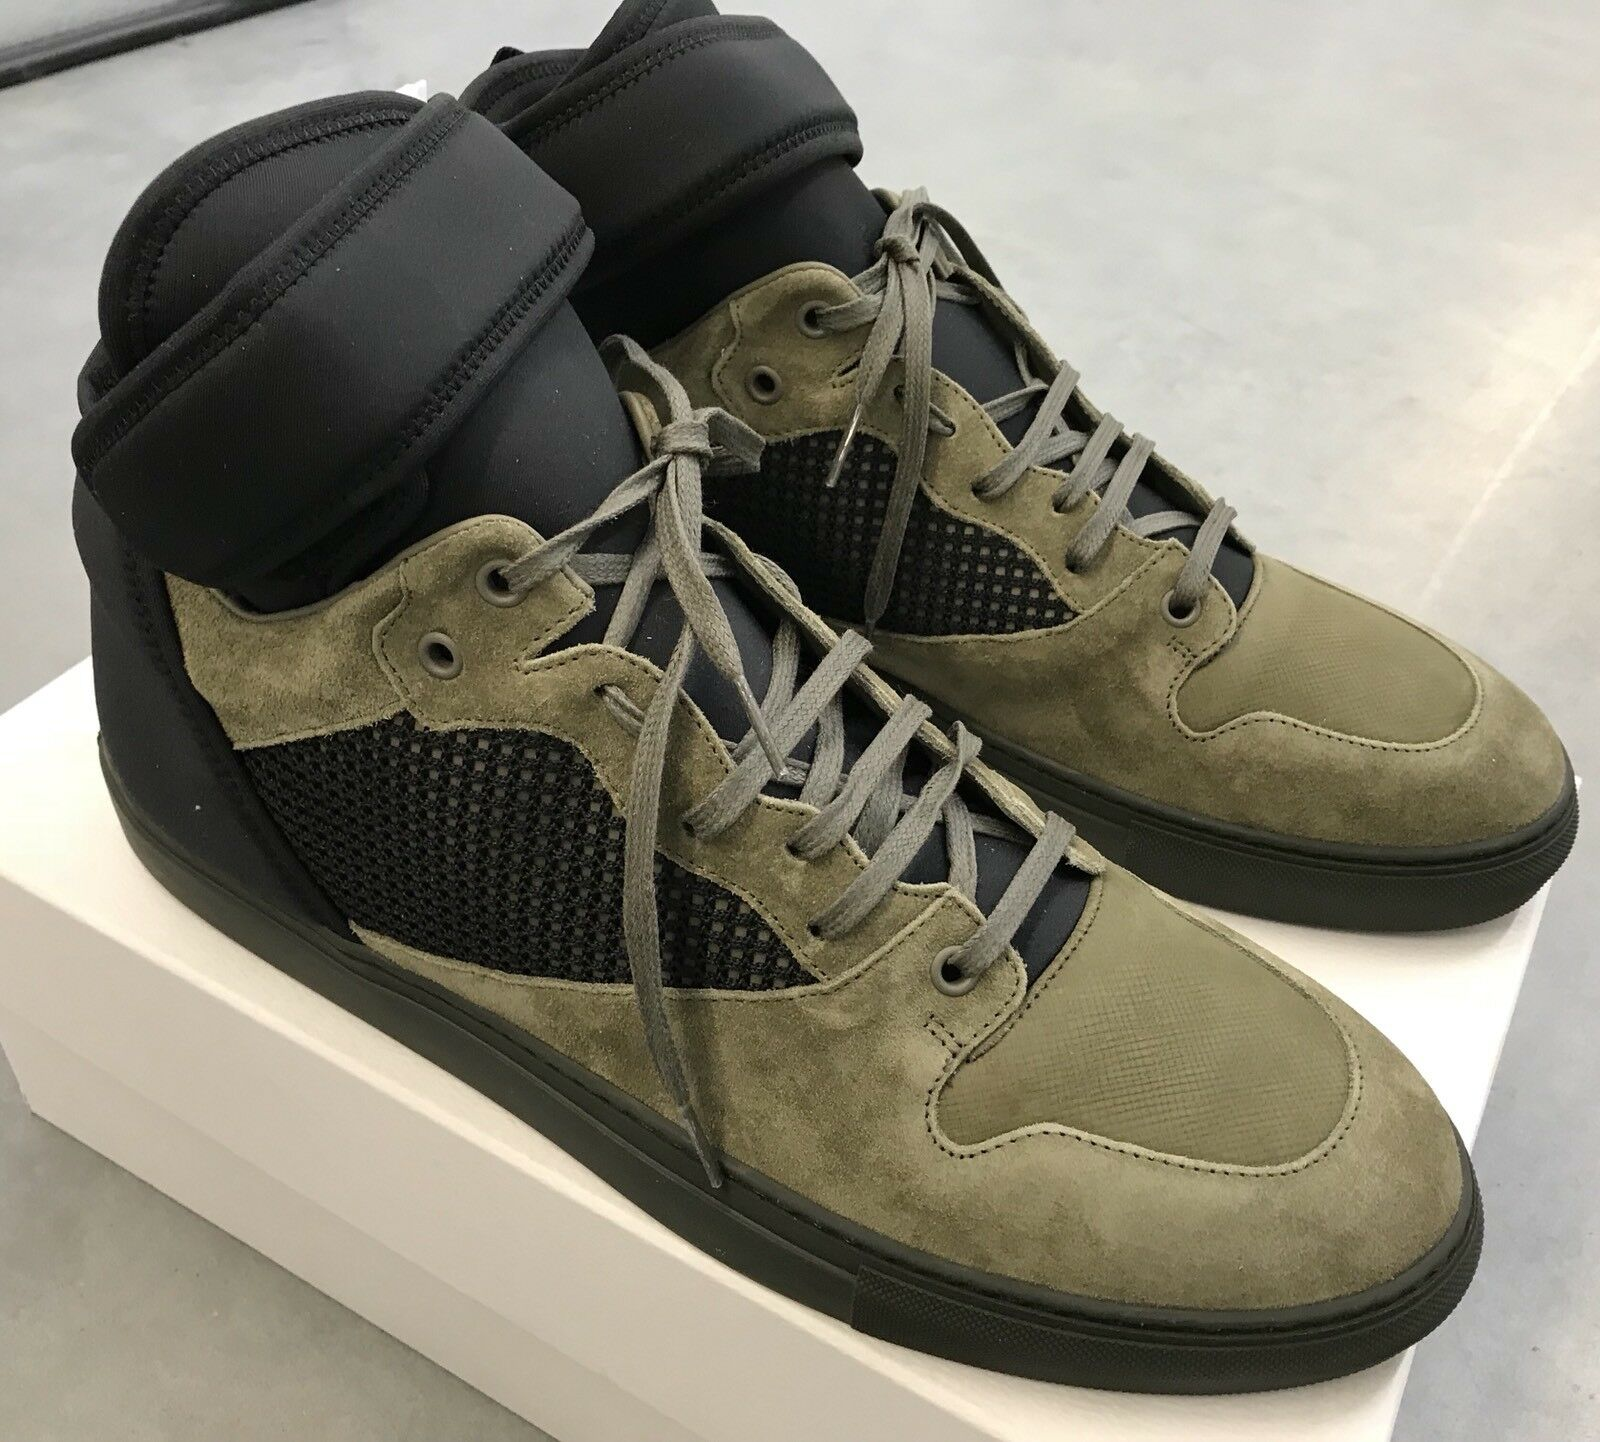 800  Balenciaga Olive Suede High Tops 47  size US 14, EU 47 Tops Made in Italy 8b5ae2